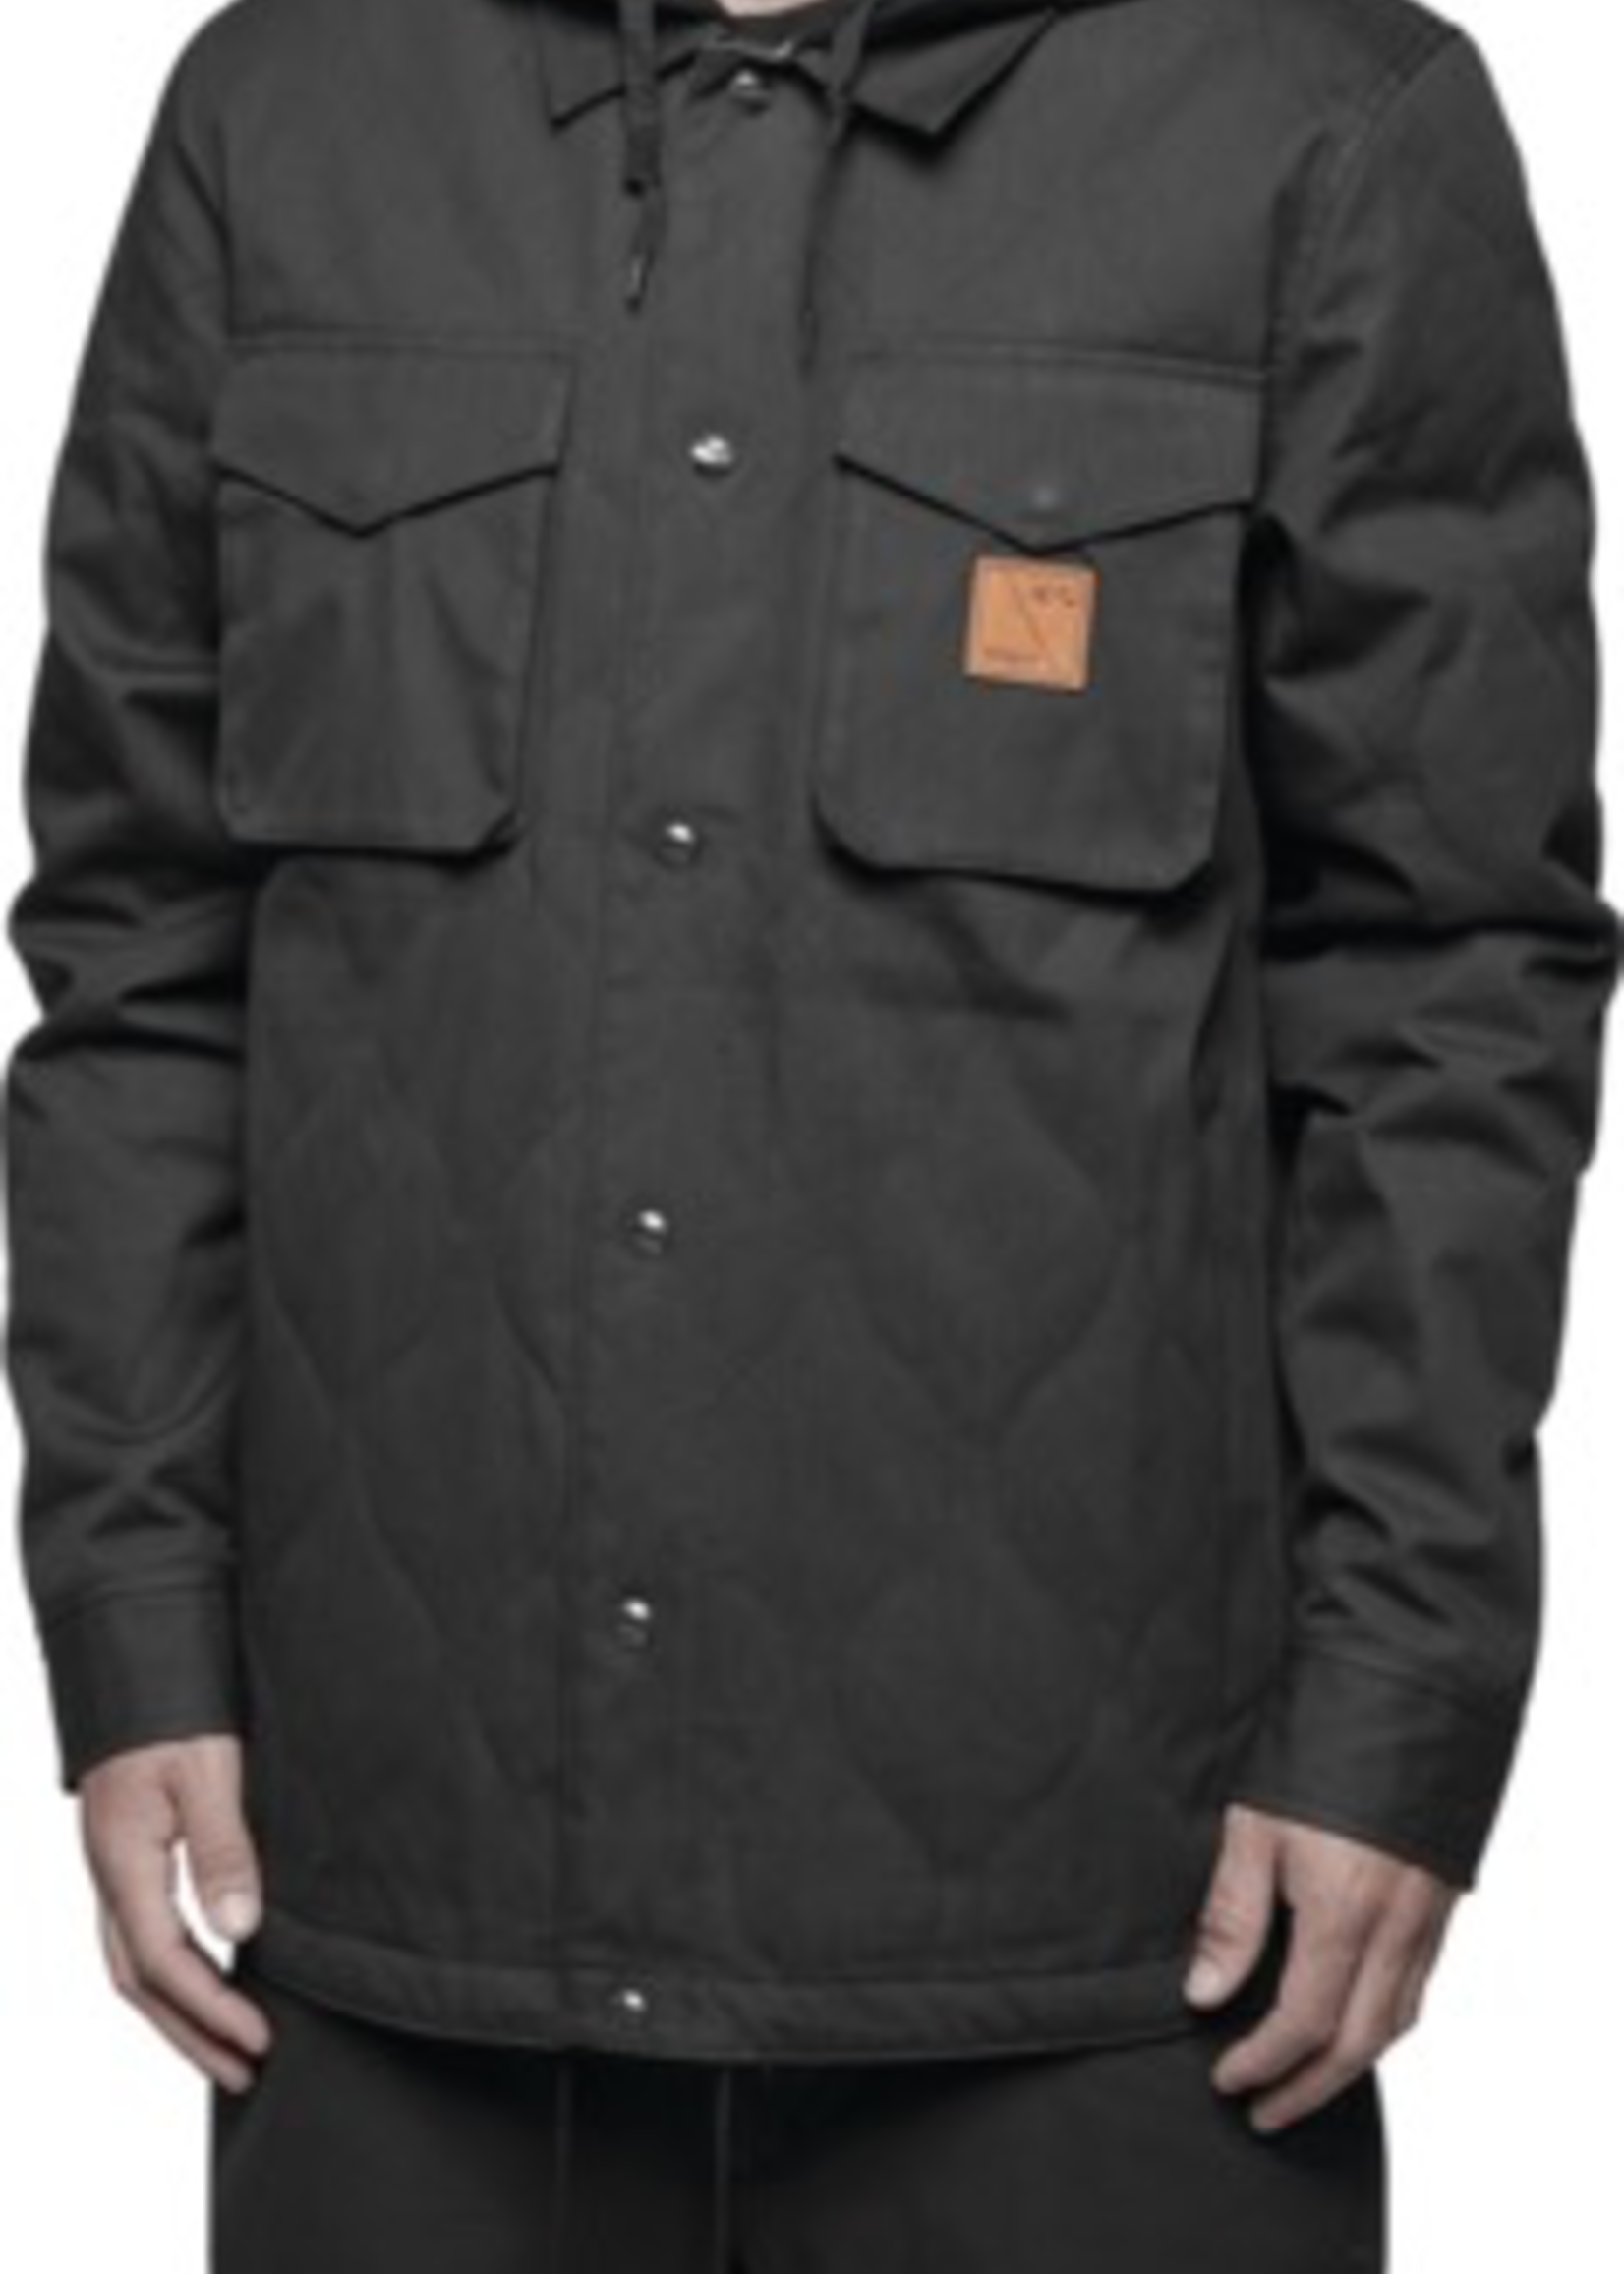 Thirty-two 32 MYDER JACKET BLACK SMALL